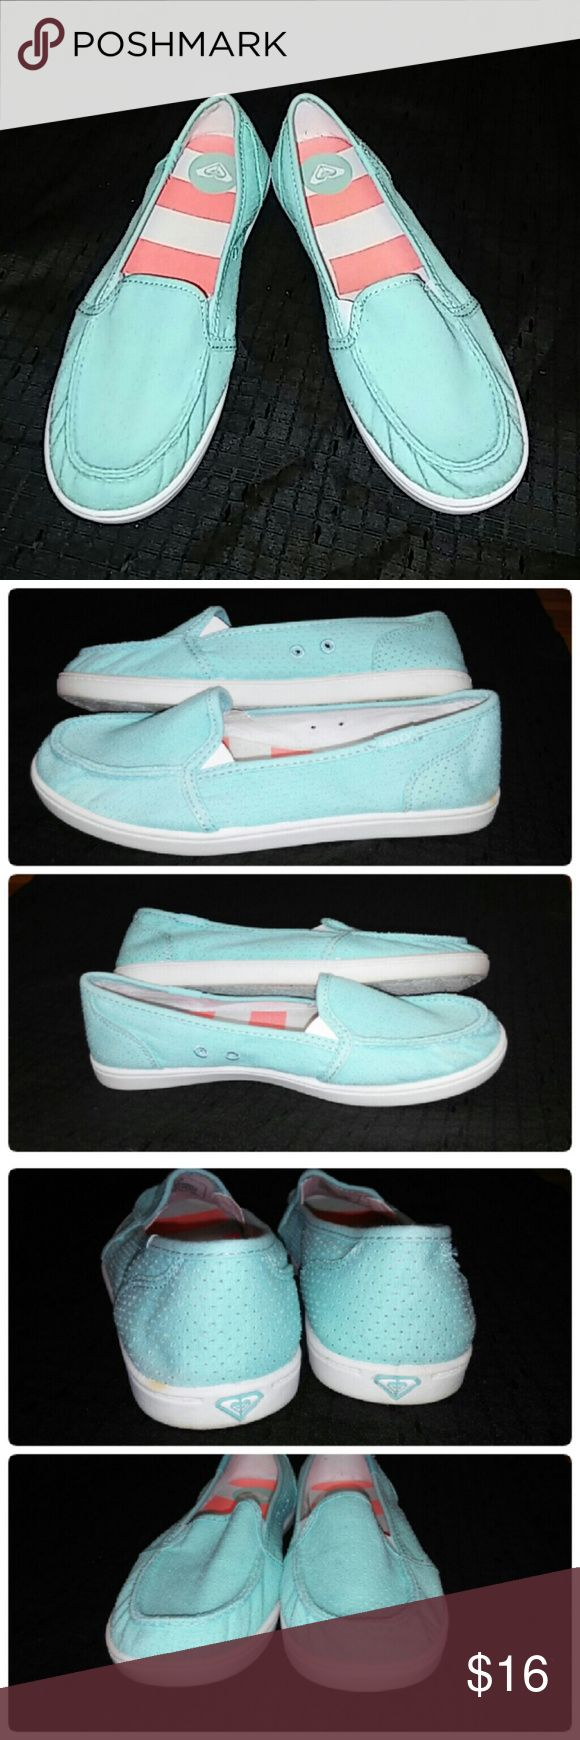 FINAL PRICE Roxy Lido II Boat Shoes Final price. Reasonable offers always considered on items over $15. Occasionally on items under $15. Bundle deals available!! Don't miss these shoes!!!  Beautiful light turquoise slip on dock shoes. Washed twill canvas shoe with padded canvas insoles. Barely worn, soles have barely any use. Small discoloration spot as seen in picture 4. Roxy Shoes